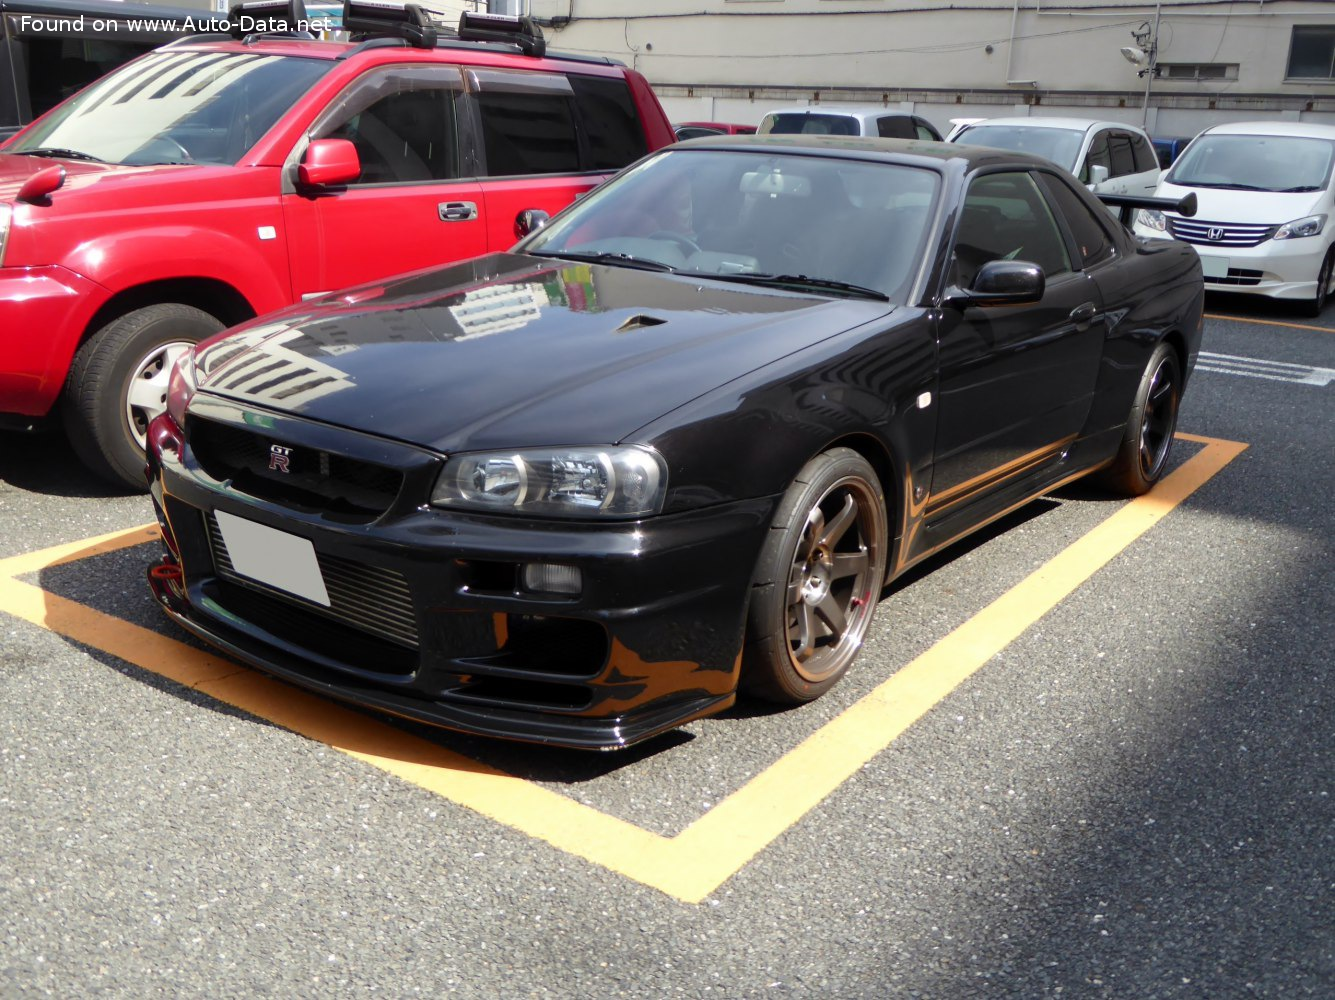 1999 Nissan Skyline Gt R X R34 2 6 I 24v Turbo 4wd 280 Hp Technical Specs Data Fuel Consumption Dimensions